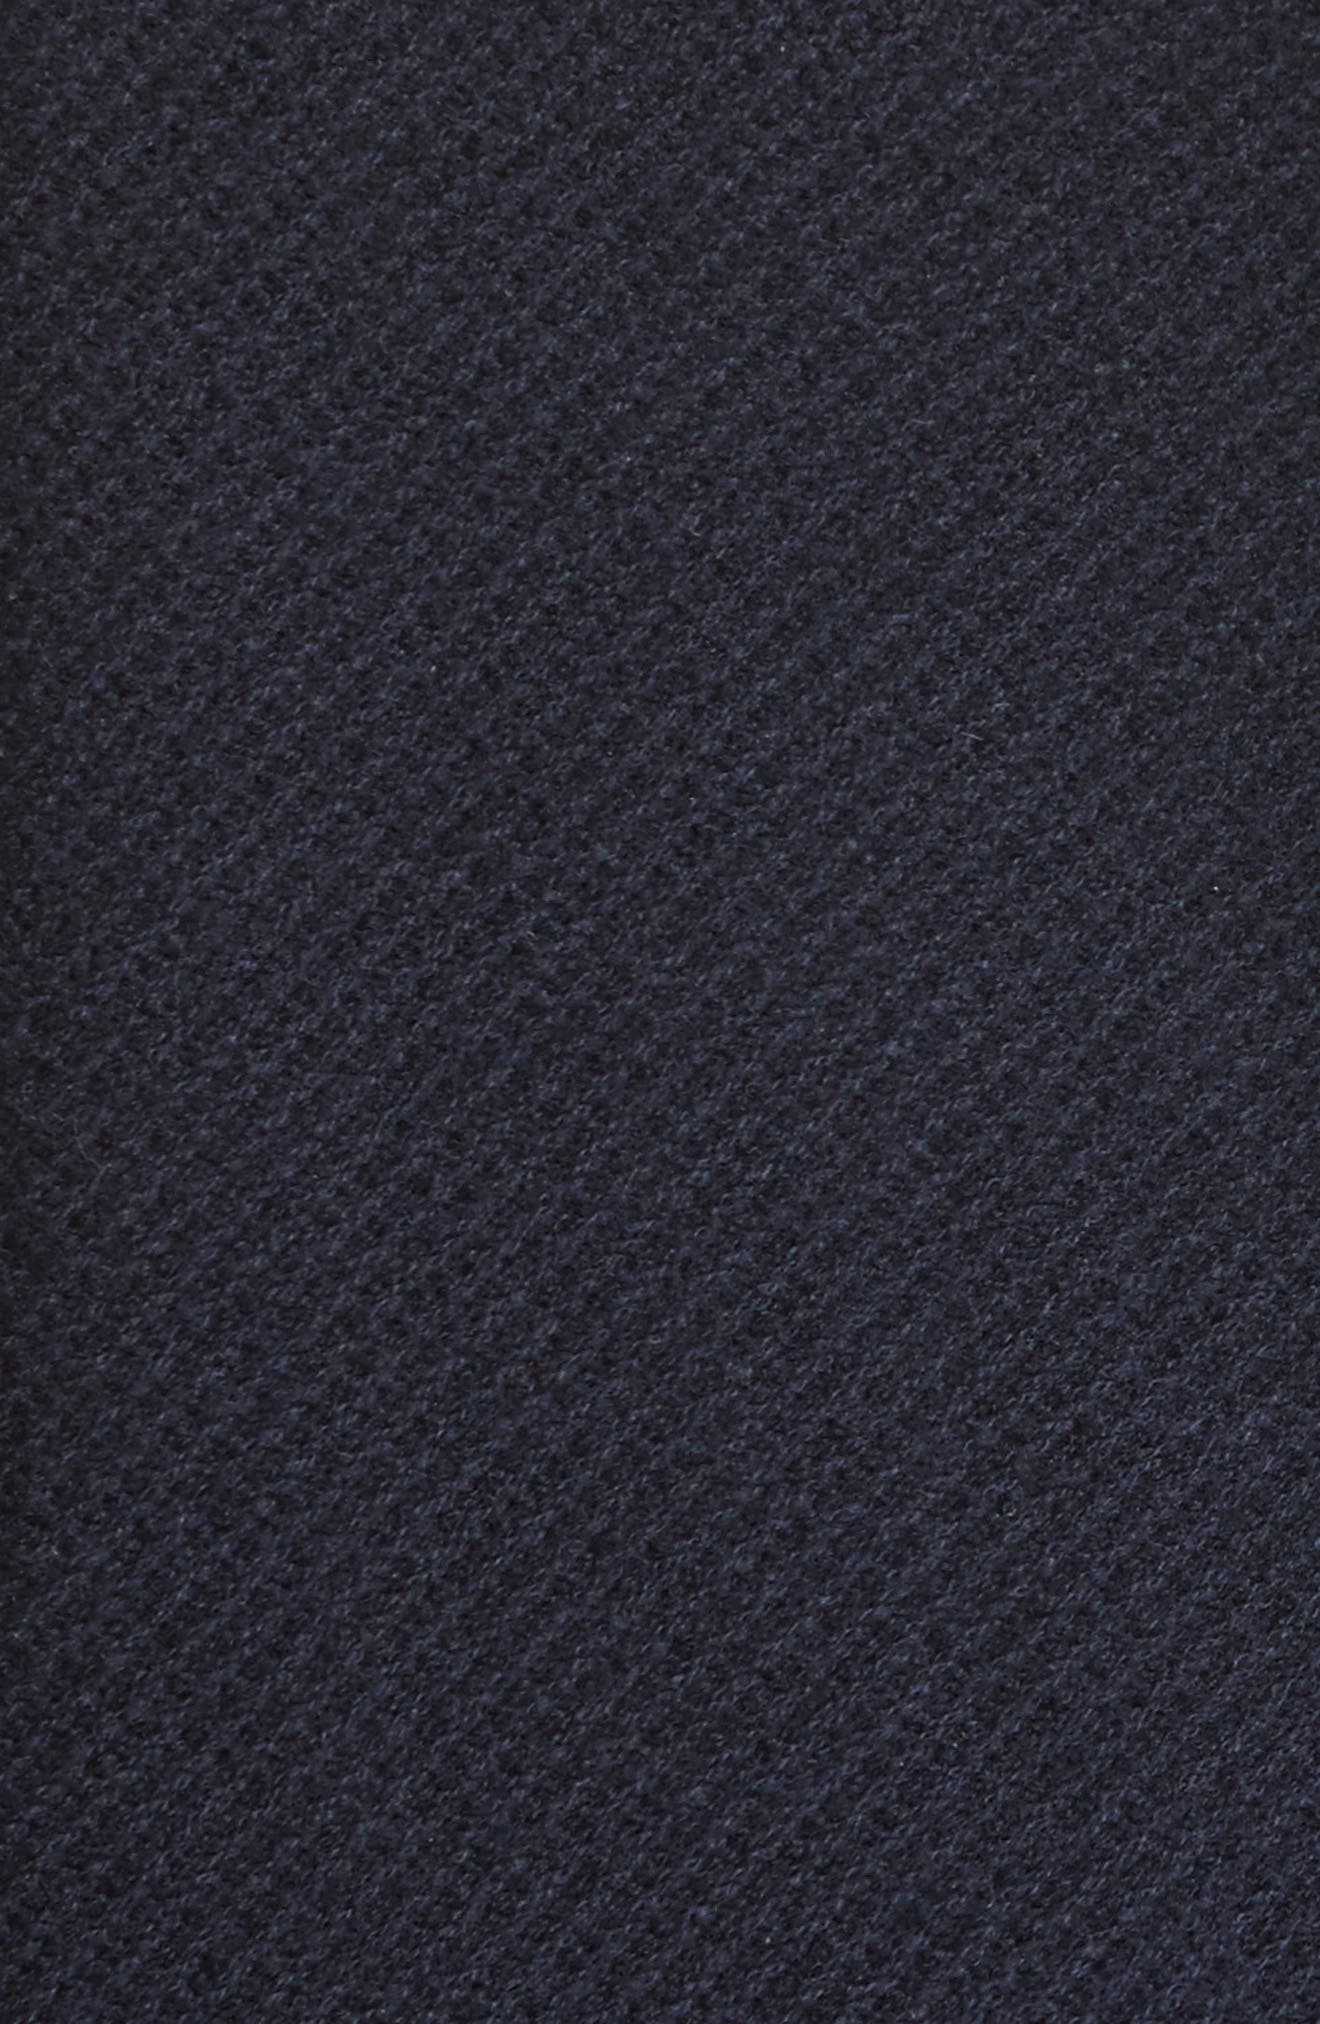 Windowpane Wool & Cashmere Sweater,                             Alternate thumbnail 3, color,                             Navy Multi